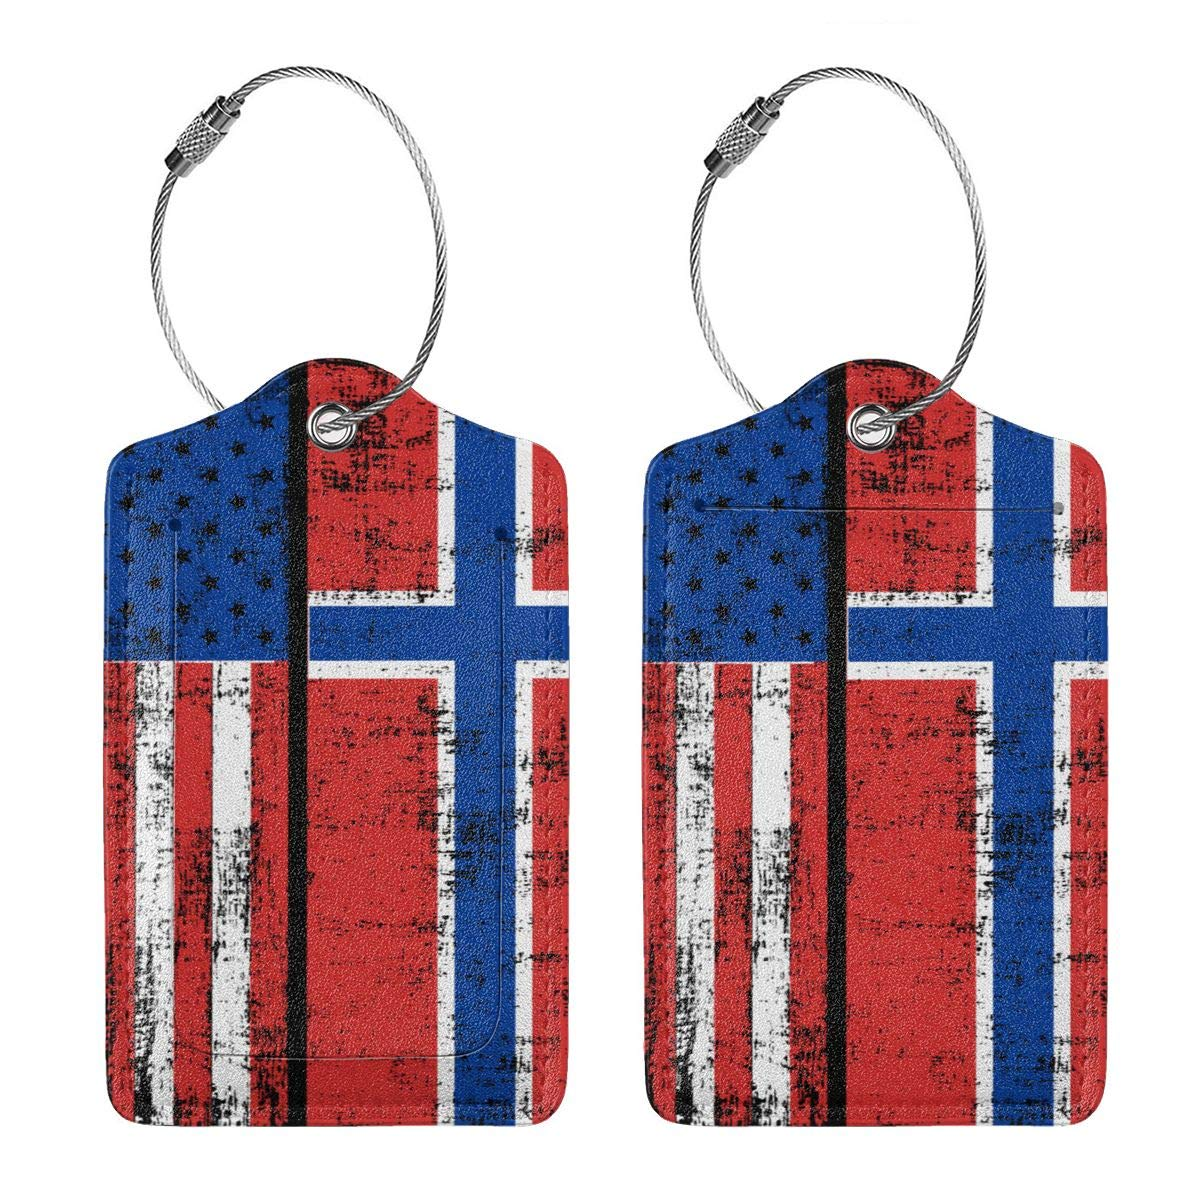 GoldK American Norwegian Flag Leather Luggage Tags Baggage Bag Instrument Tag Travel Labels Accessories with Privacy Cover